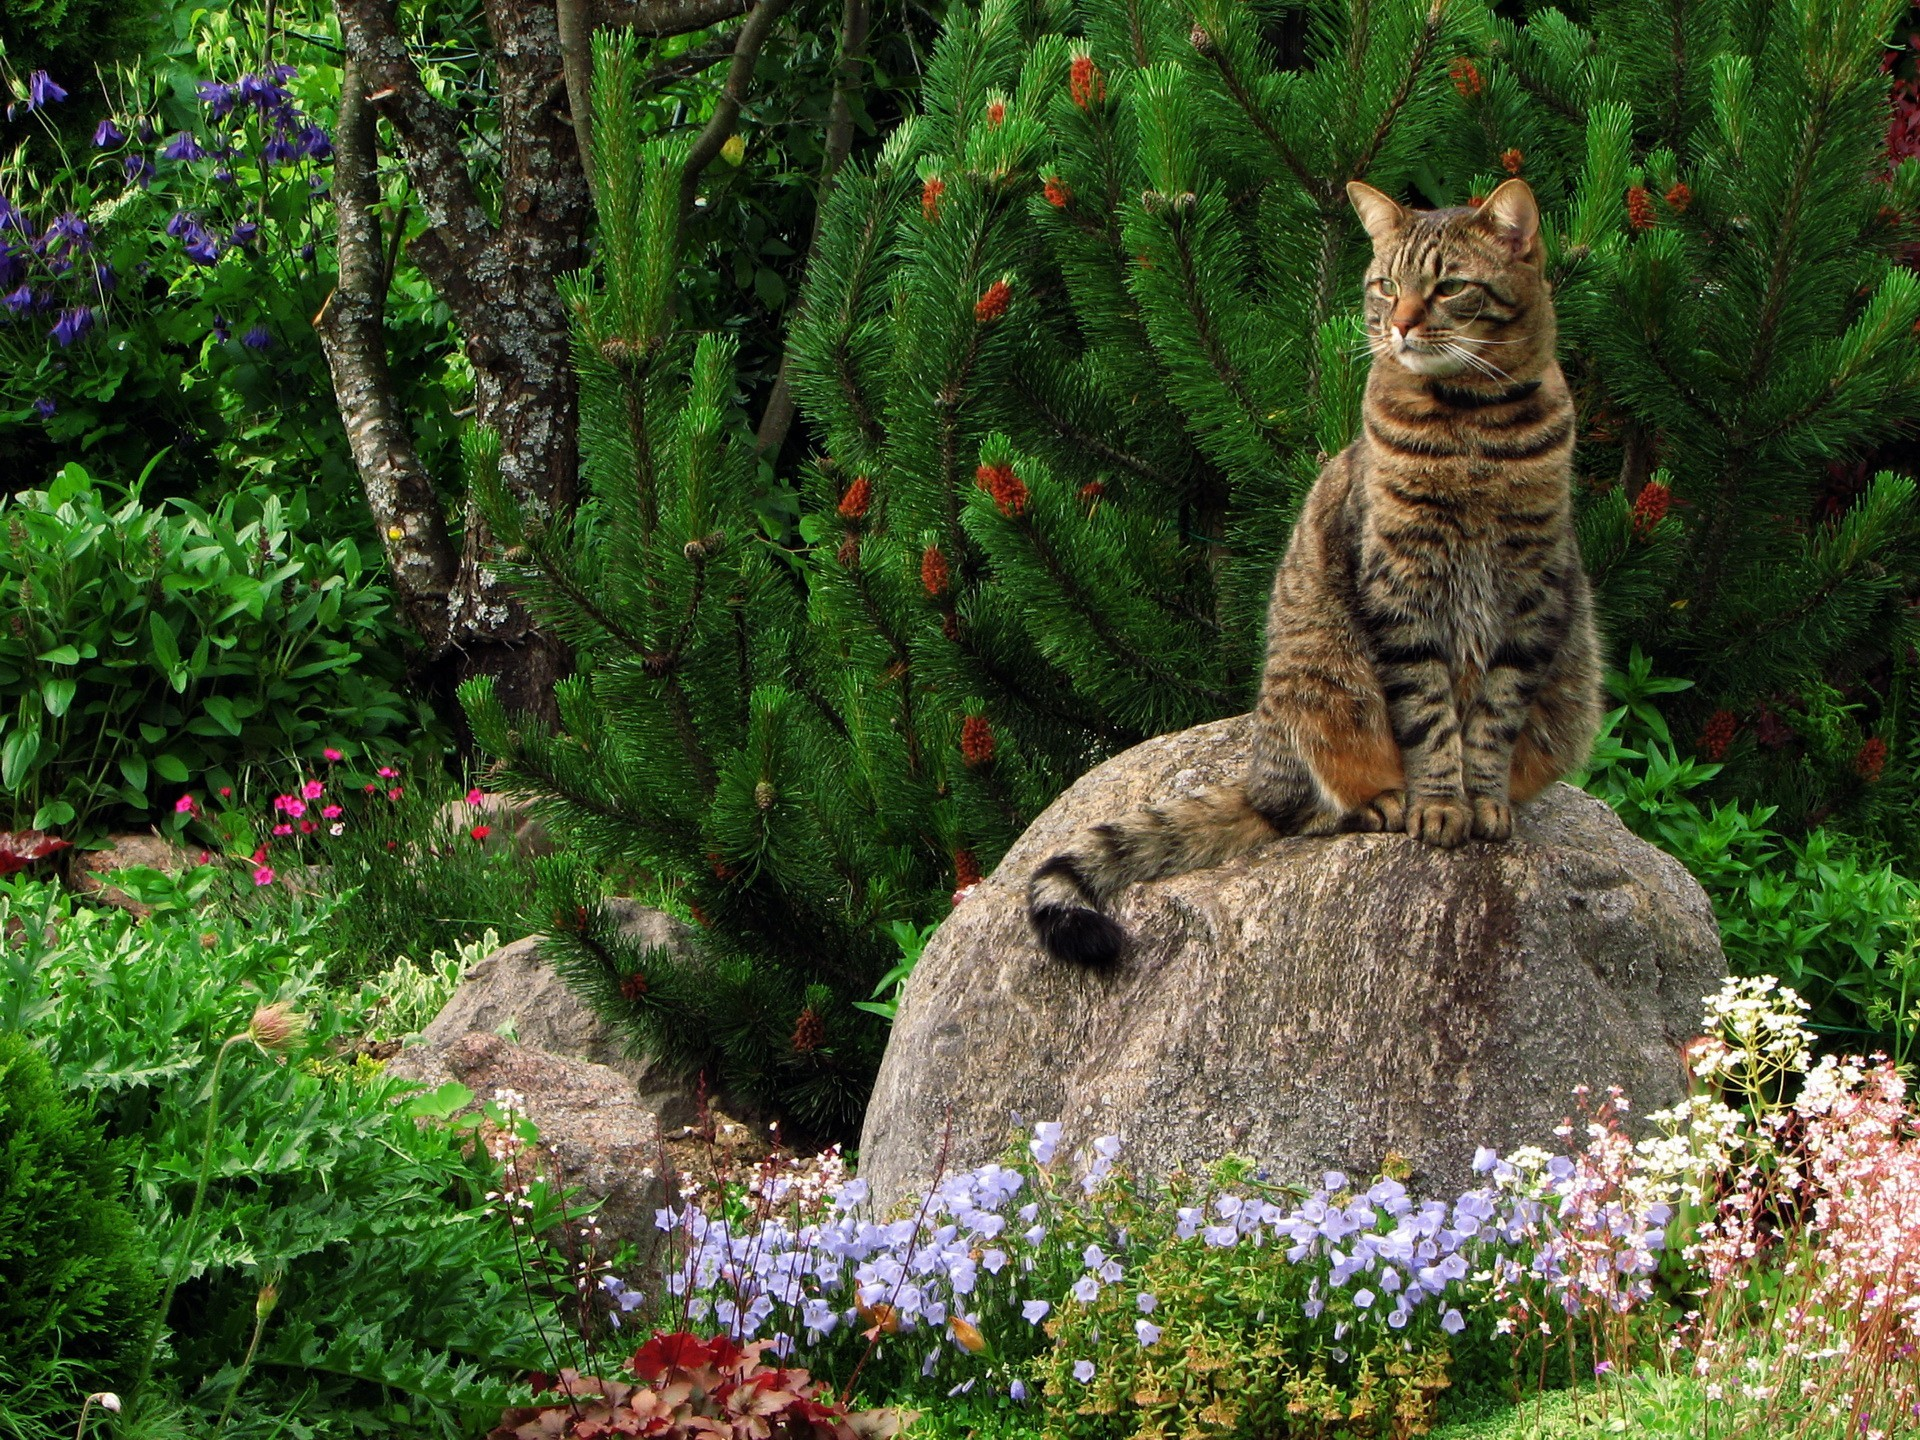 Cat on a stone